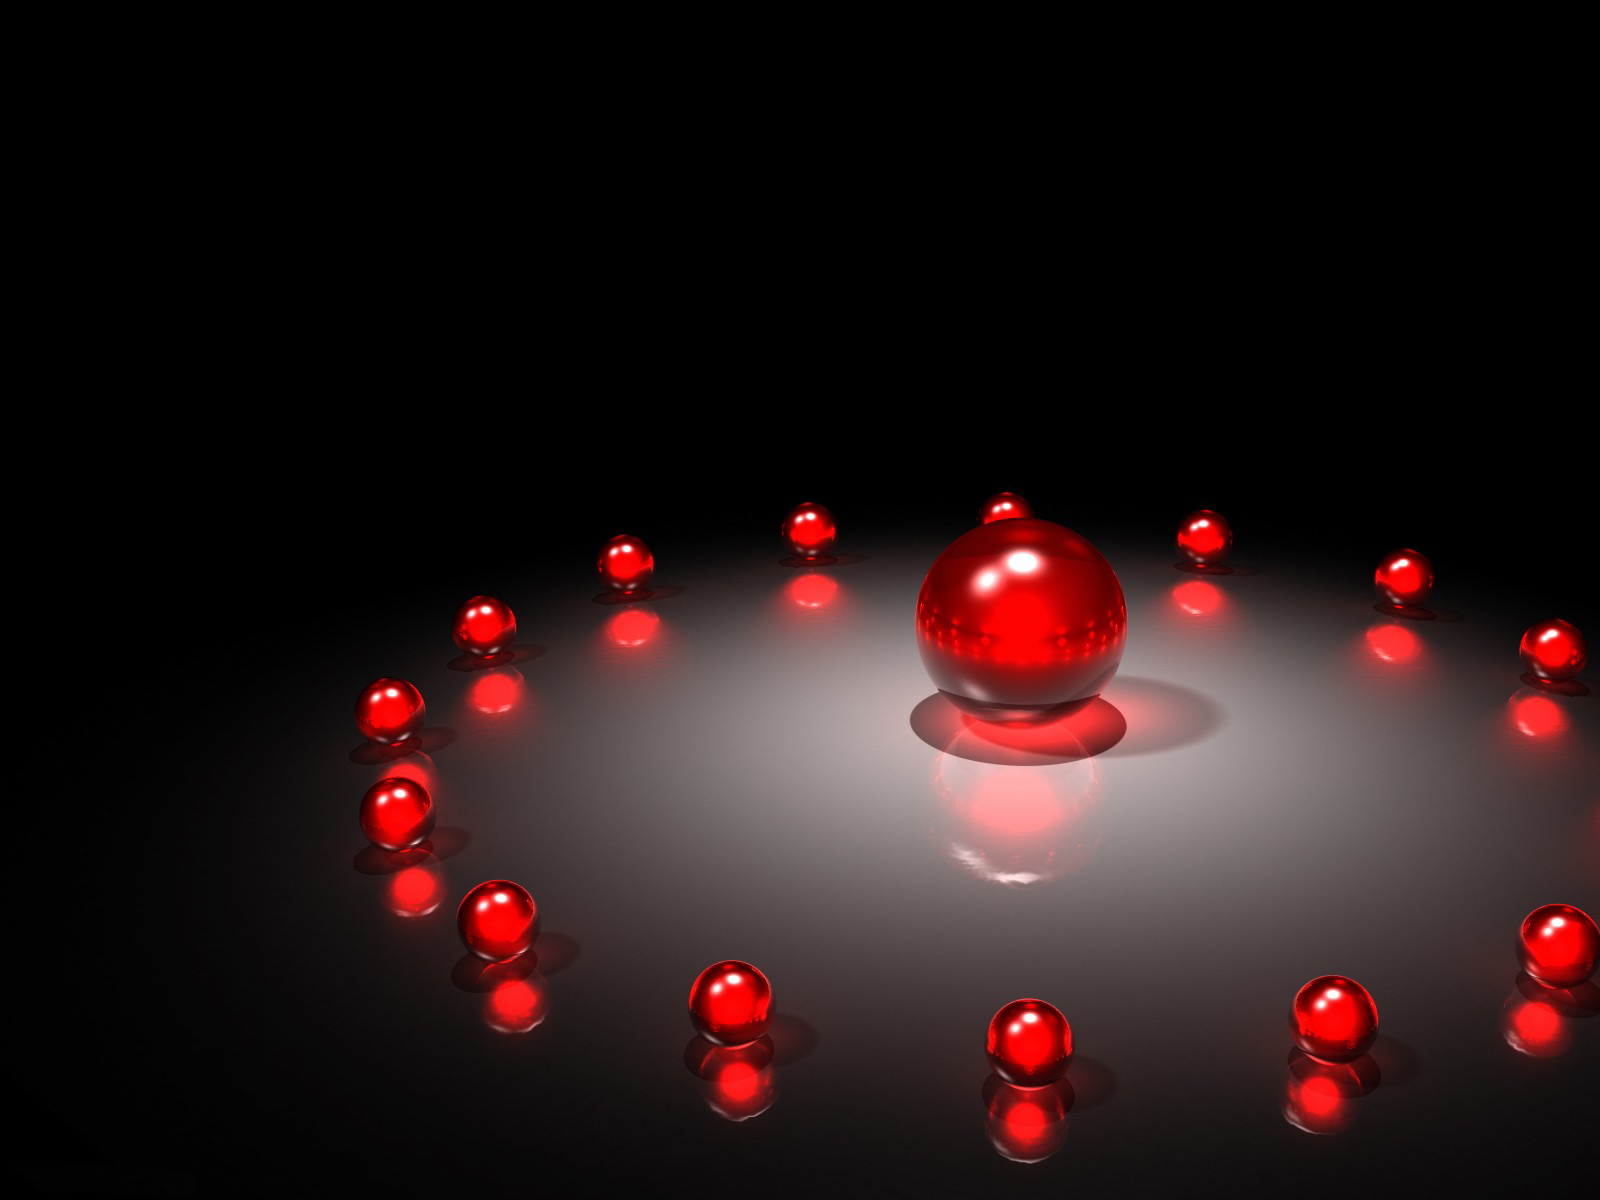 Lovely Red Balls Abstract Creative British Backgrounds Wallpapers Backgrounds For Tablet Cellphone